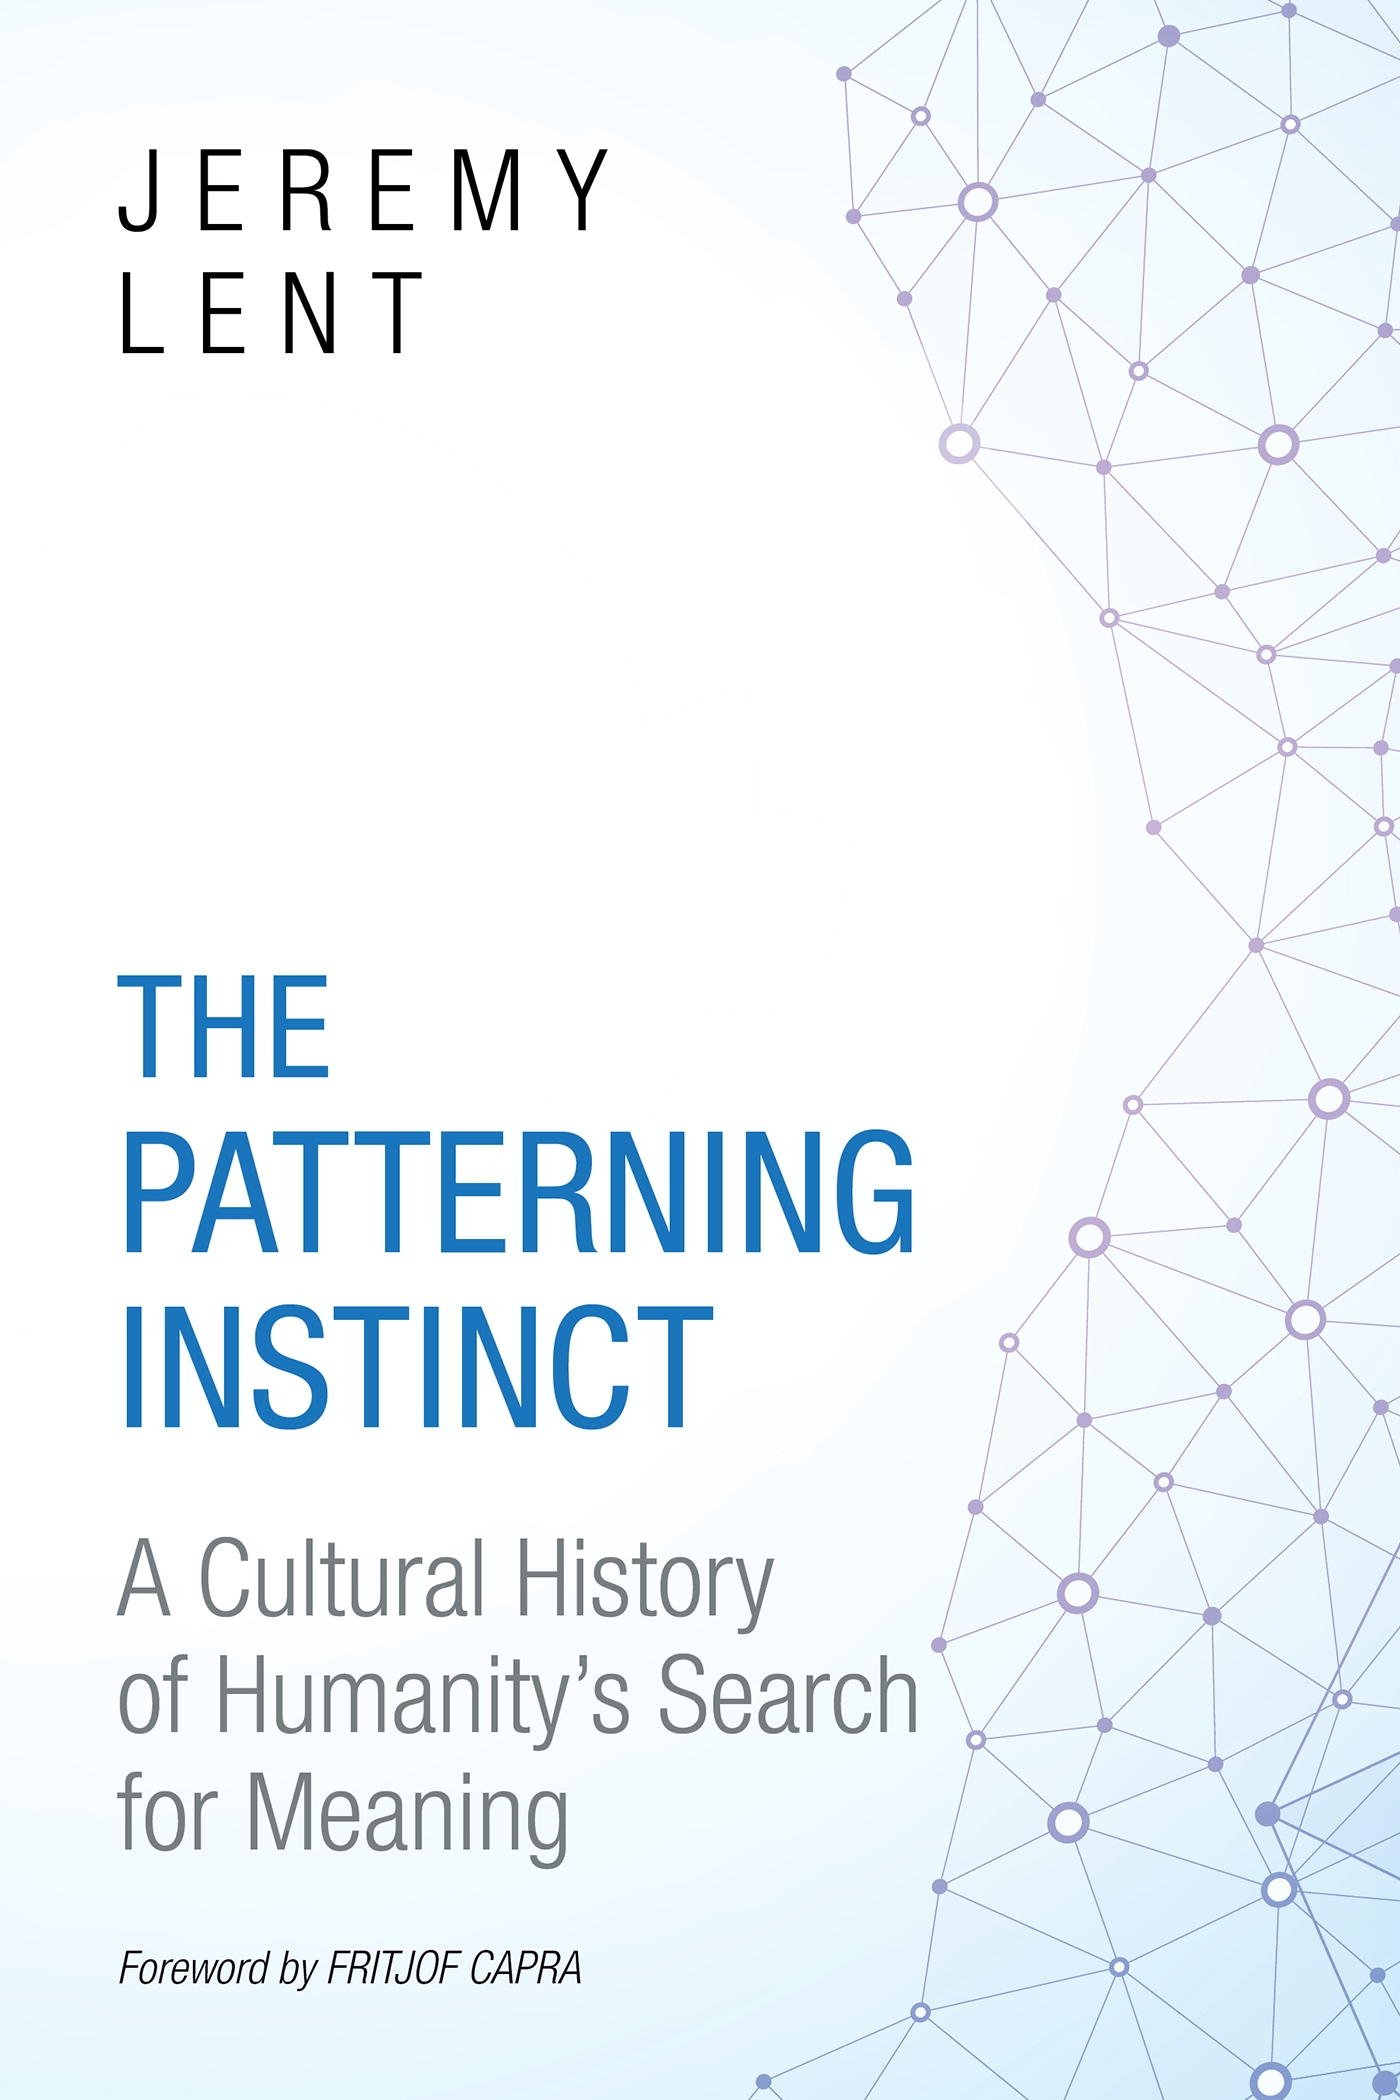 Image OfThe Patterning Instinct: A Cultural History Of Humanity's Search For Meaning